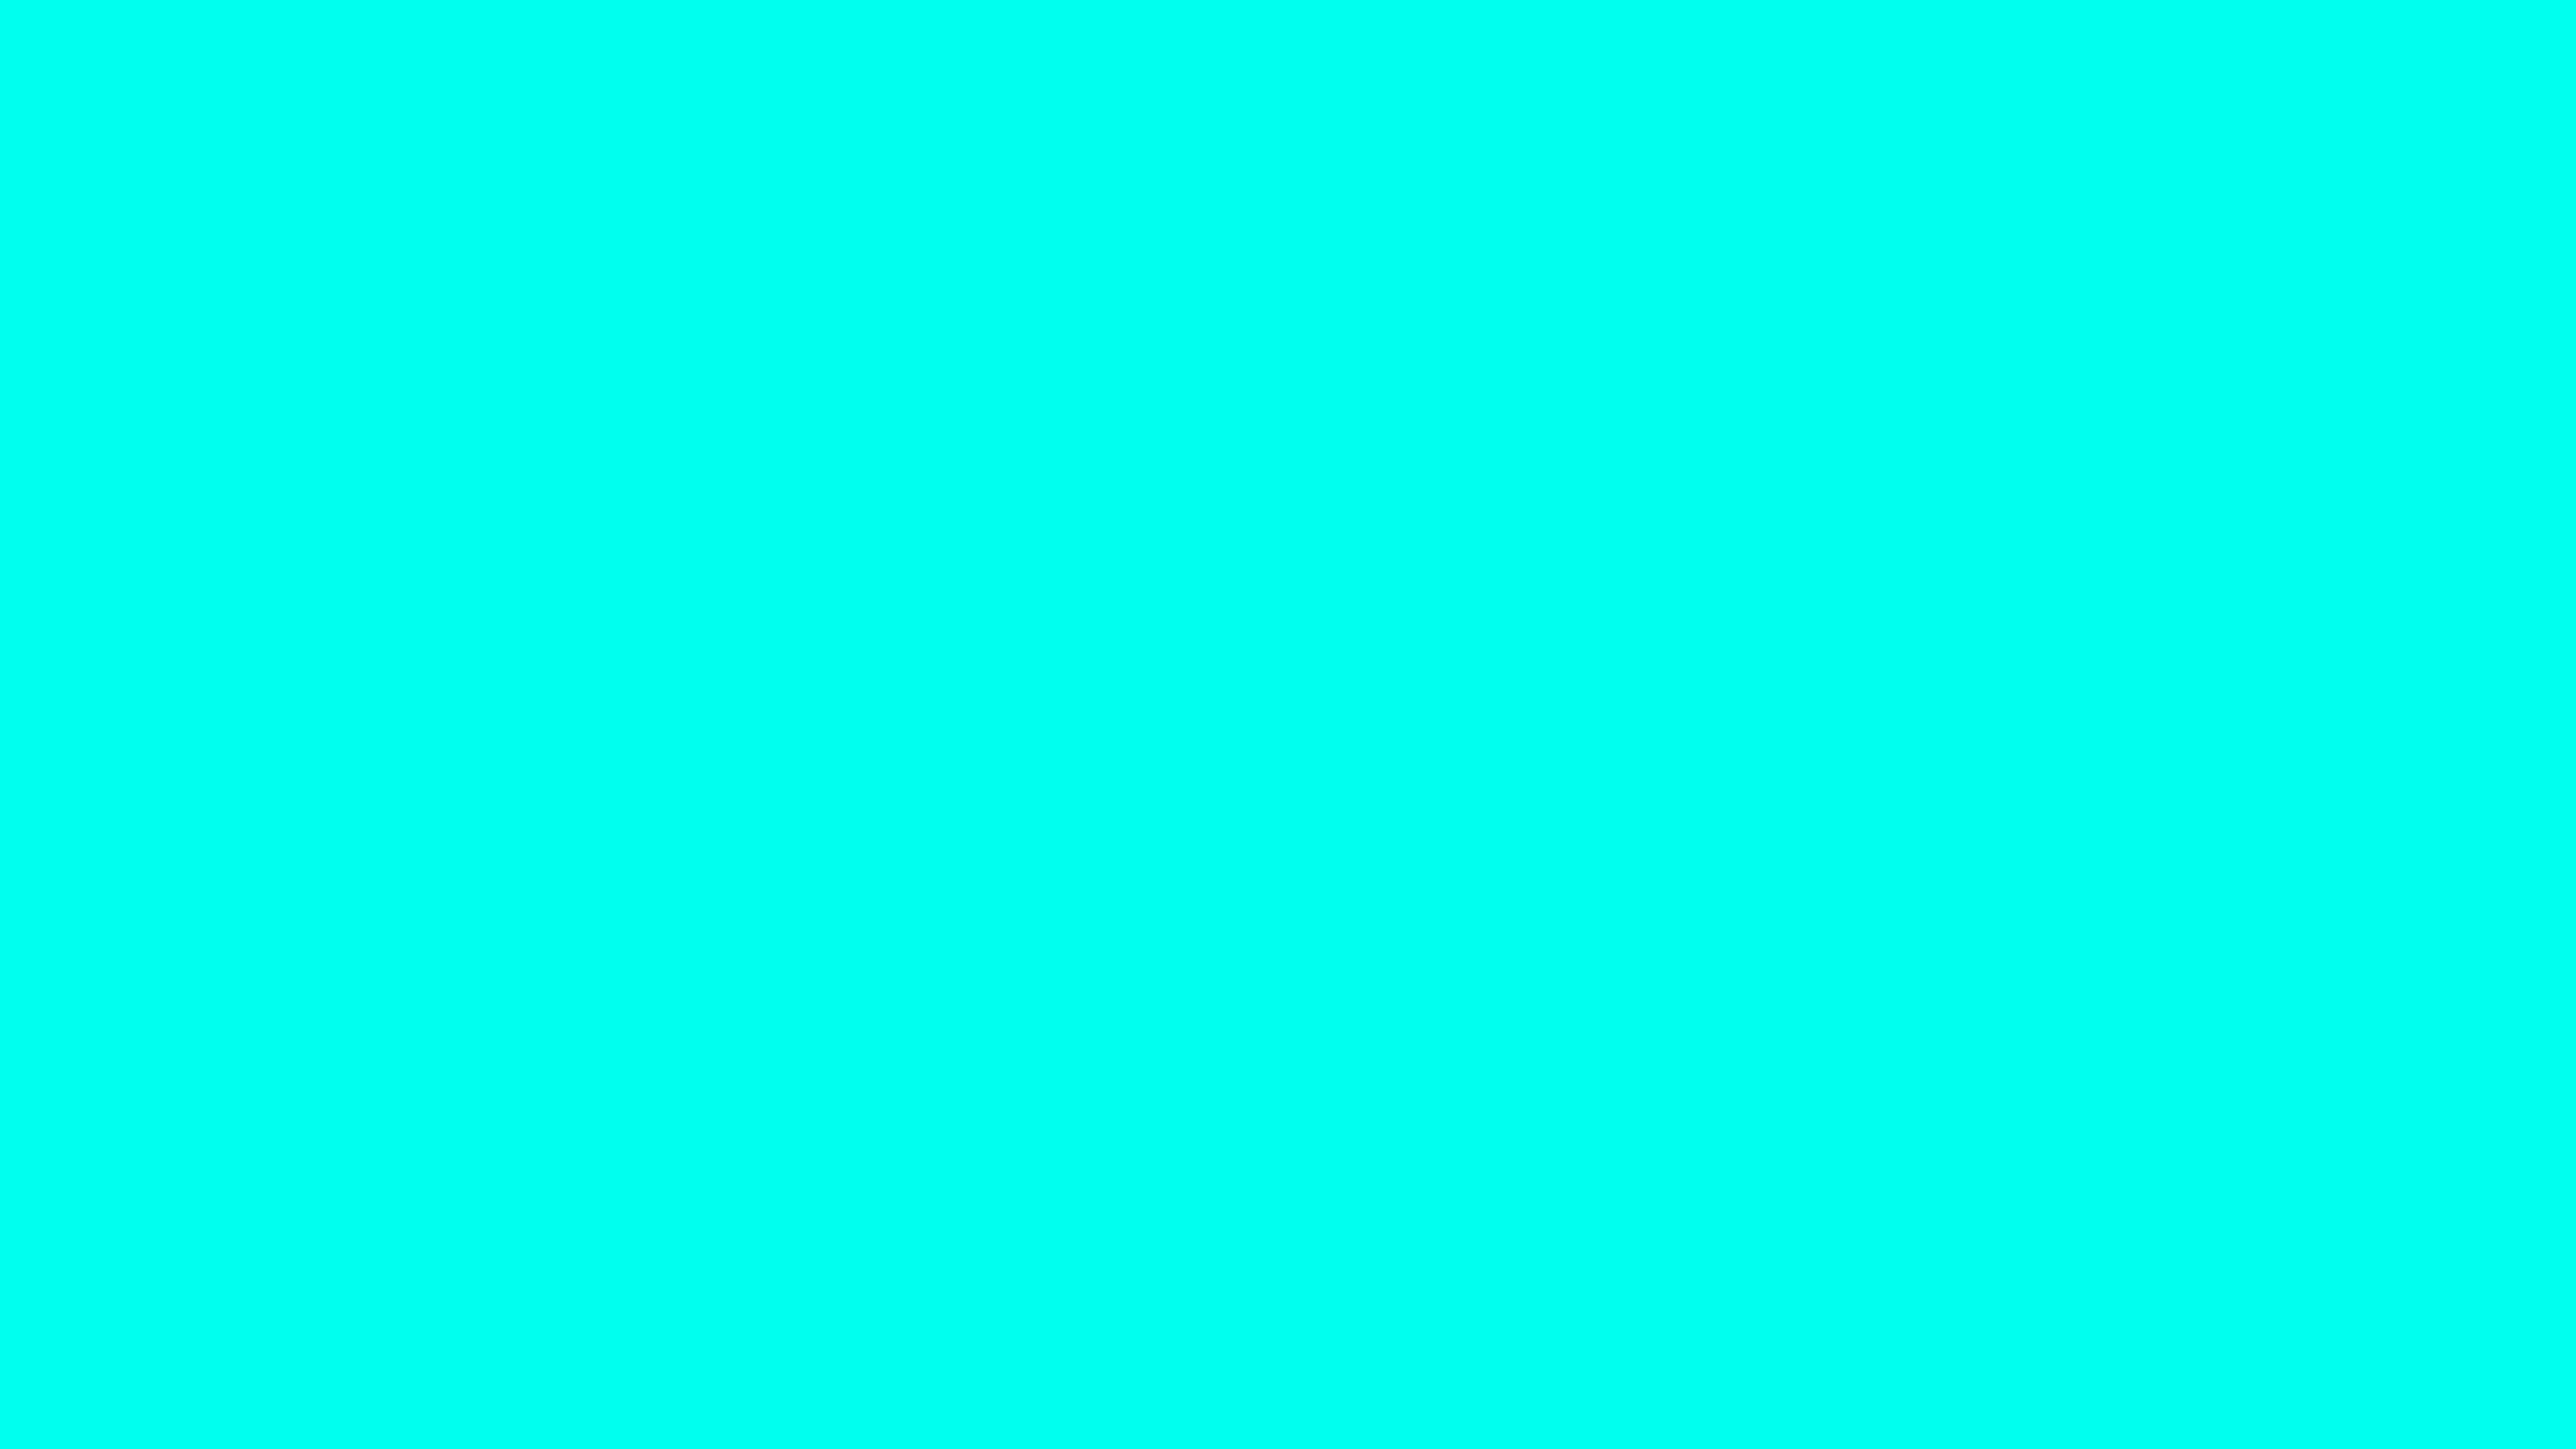 3840x2160 Turquoise Blue Solid Color Background